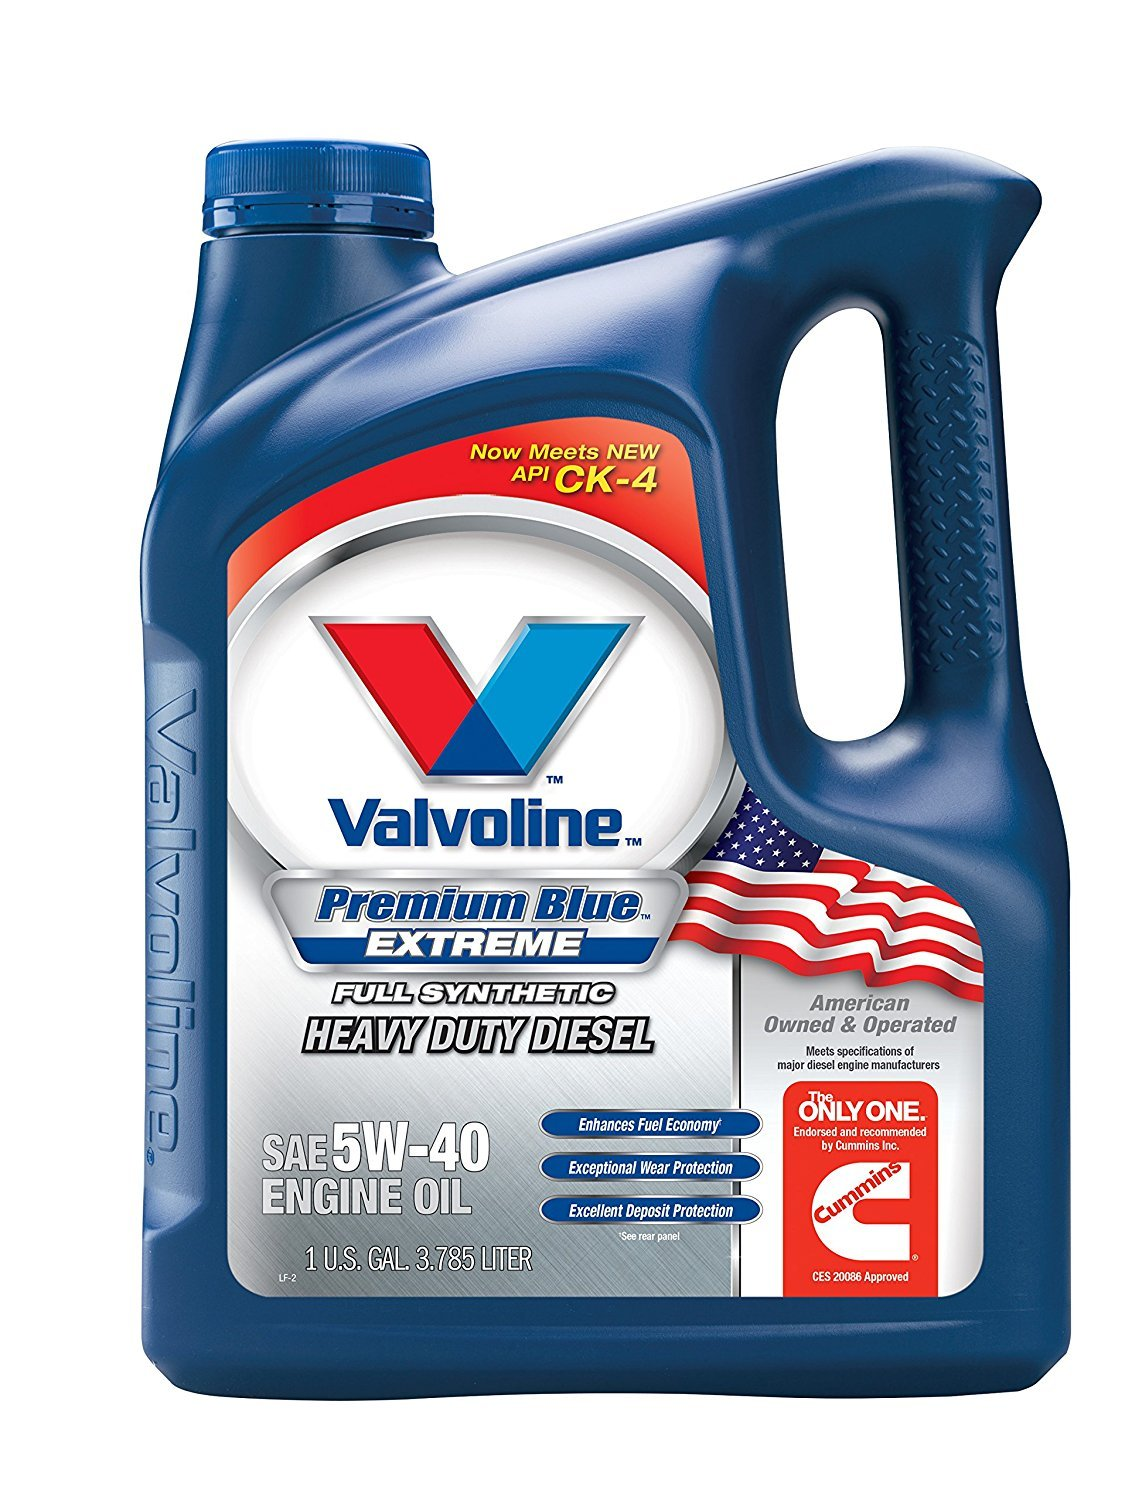 Valvoline Daily Protection 5W-40 Conventional Motor Oil - 1gal (774038) by Valvoline